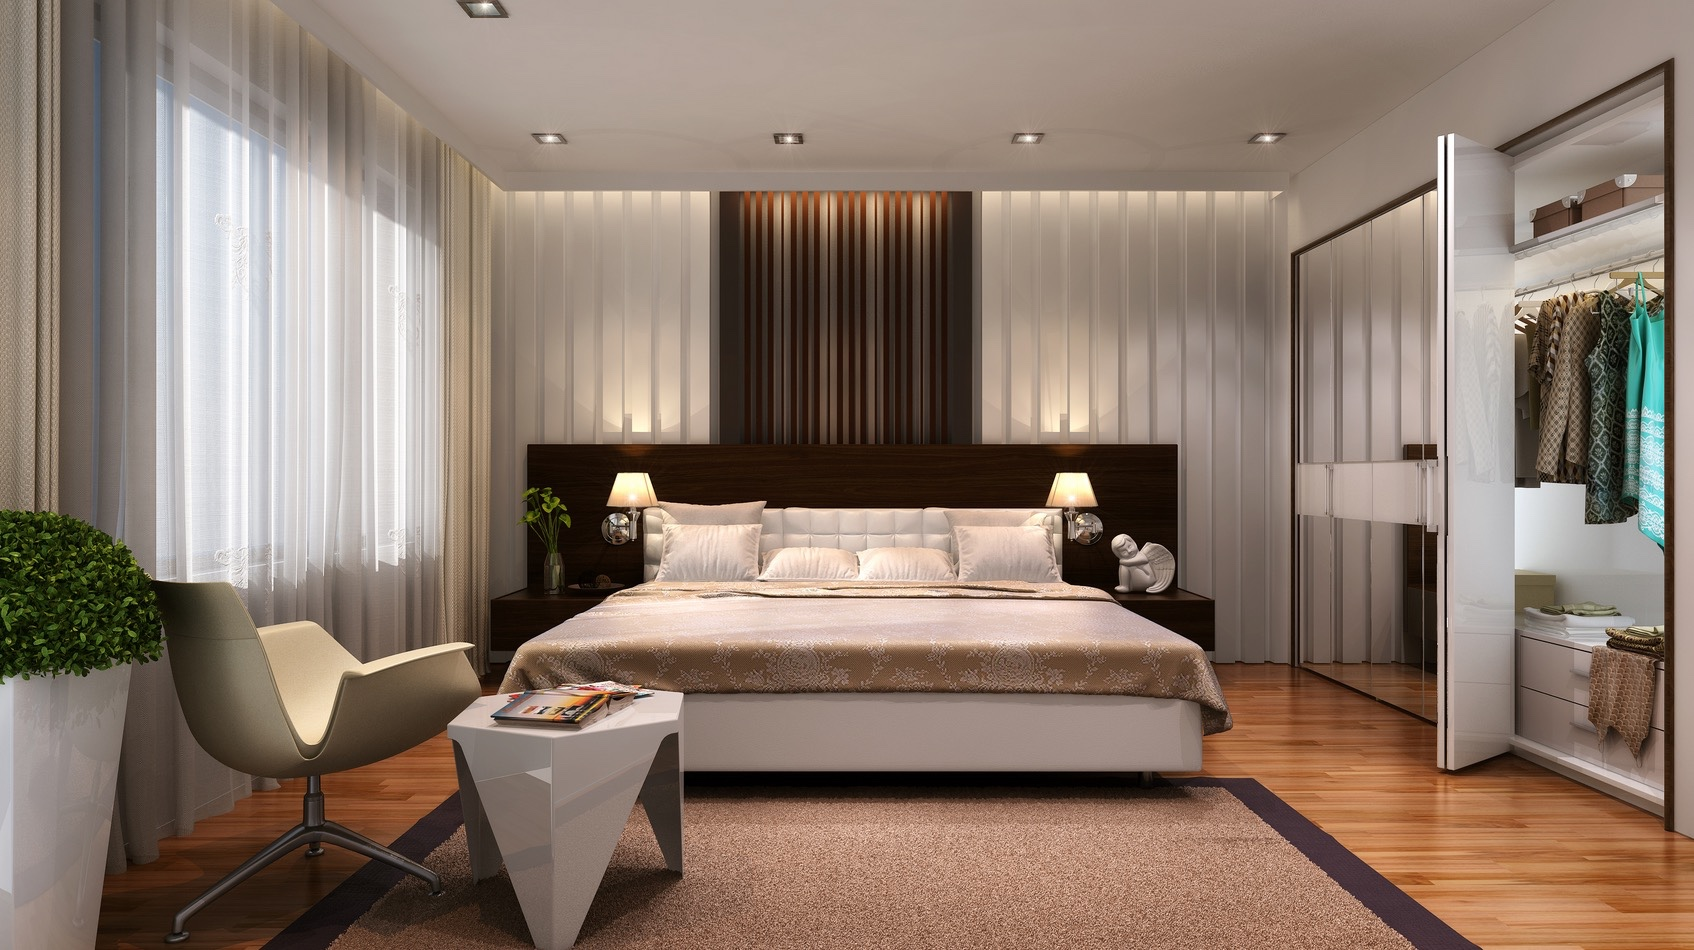 21 cool bedrooms for clean and simple design inspiration for Bedroom ideas unique